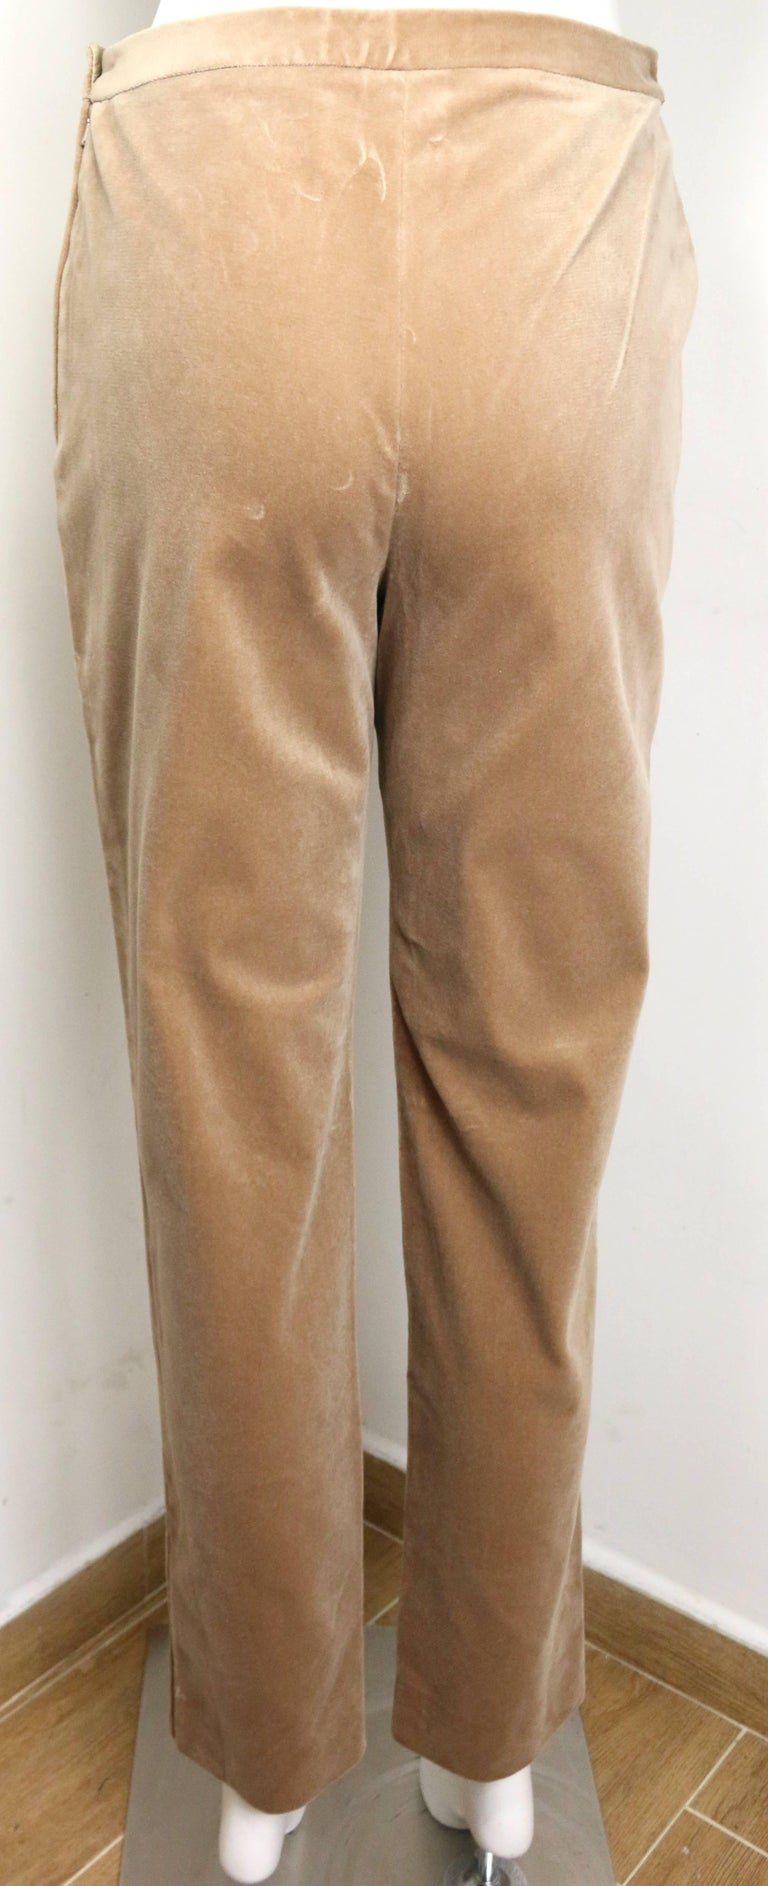 Chanel Beige Velvet Pants  In Excellent Condition For Sale In Sheung Wan, HK